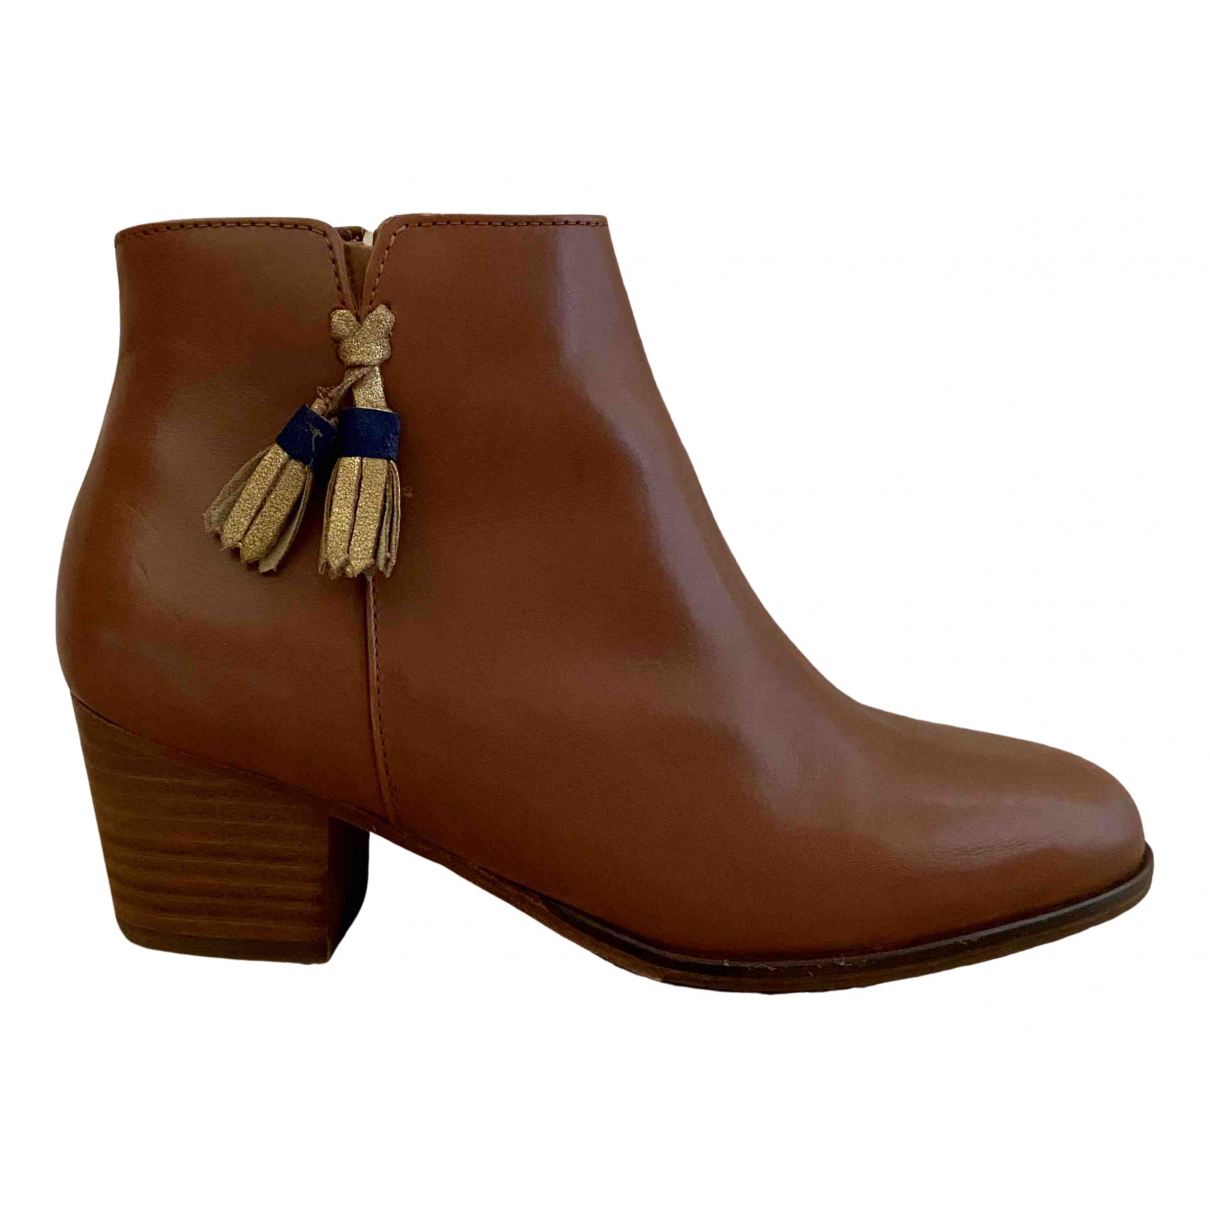 Bobbies \N Brown Leather Boots for Women 37 EU